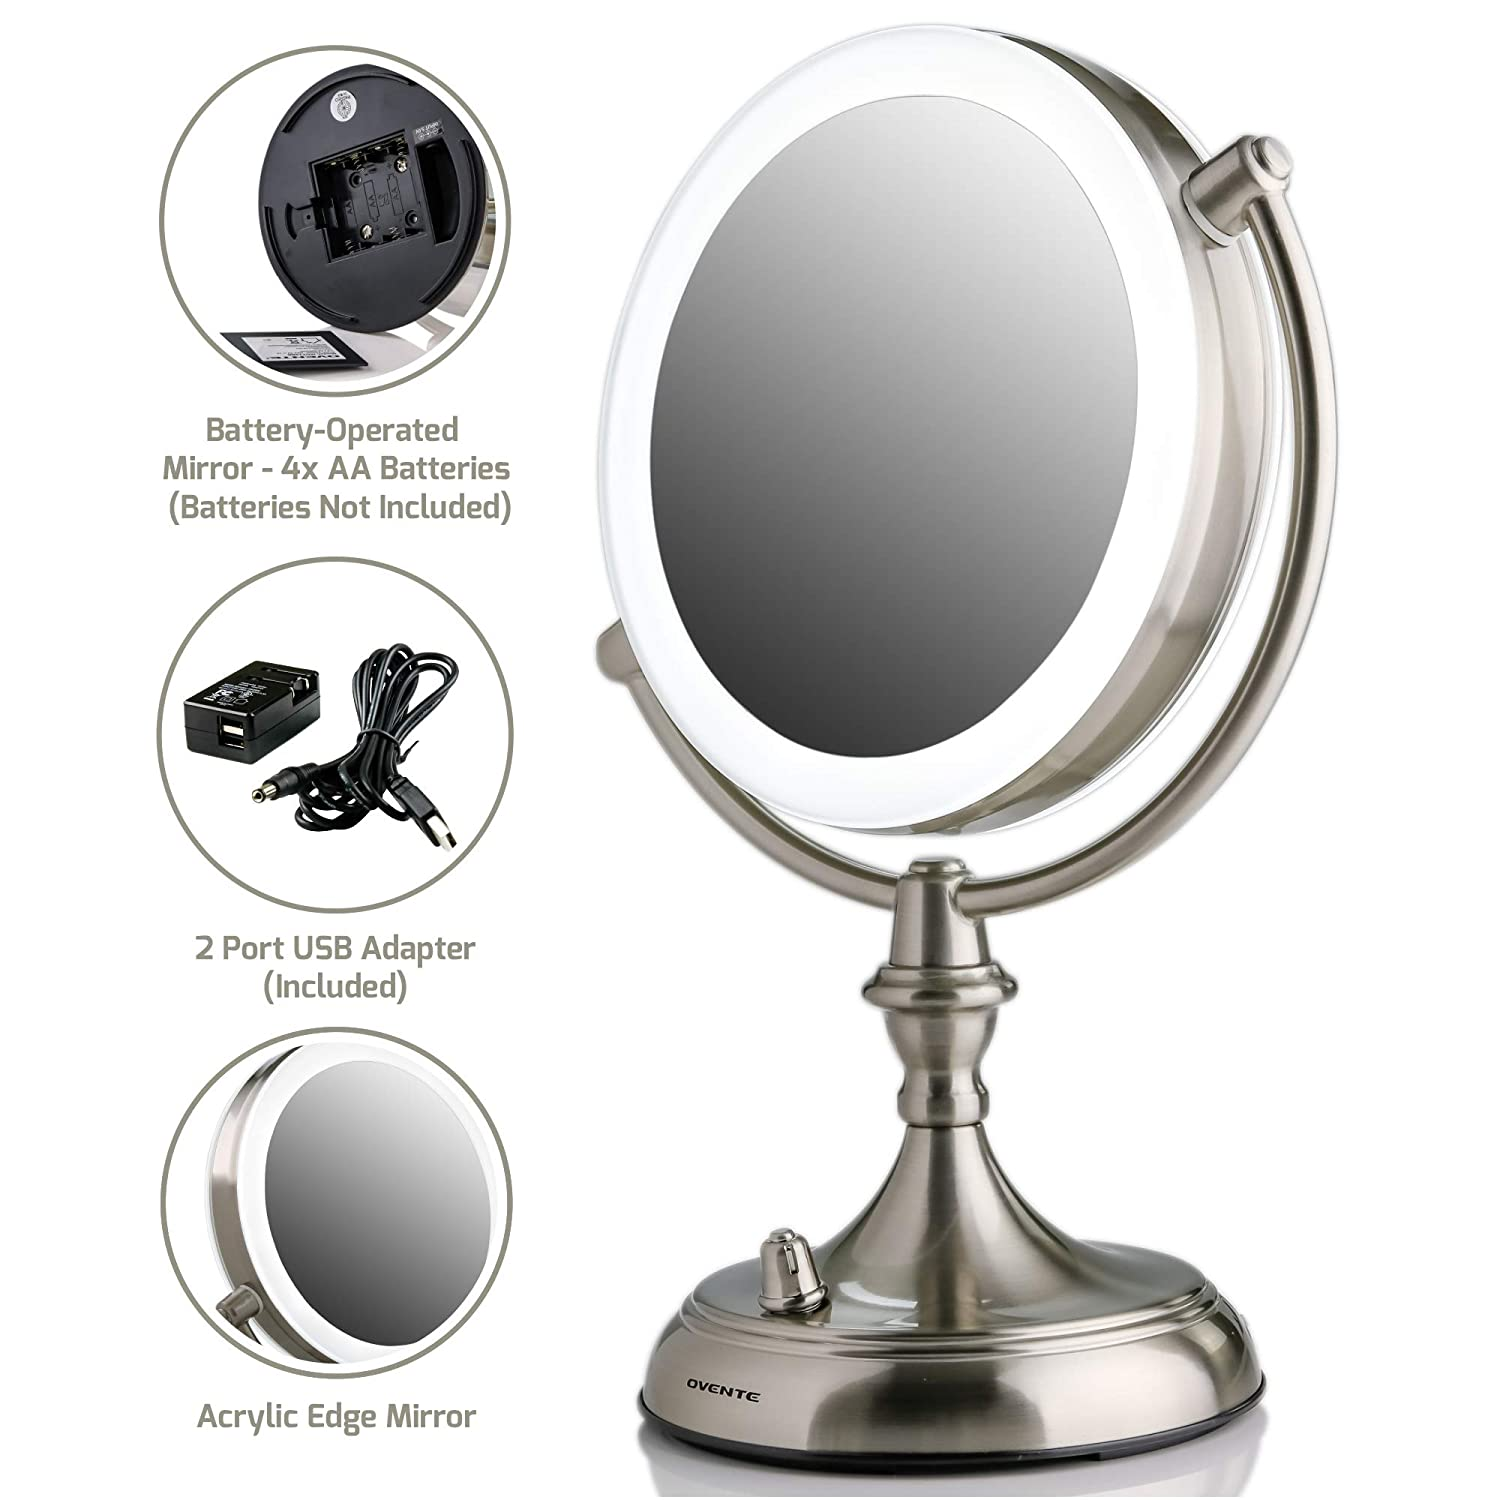 OVENTE LED Lighted Tabletop Makeup Mirror with Acrylic Edge, 7.5 Inch, Dual-Sided 1x/10x Magnification, Battery or USB Adapter Operated, Nickel Brushed (MGT75BR1X10X)